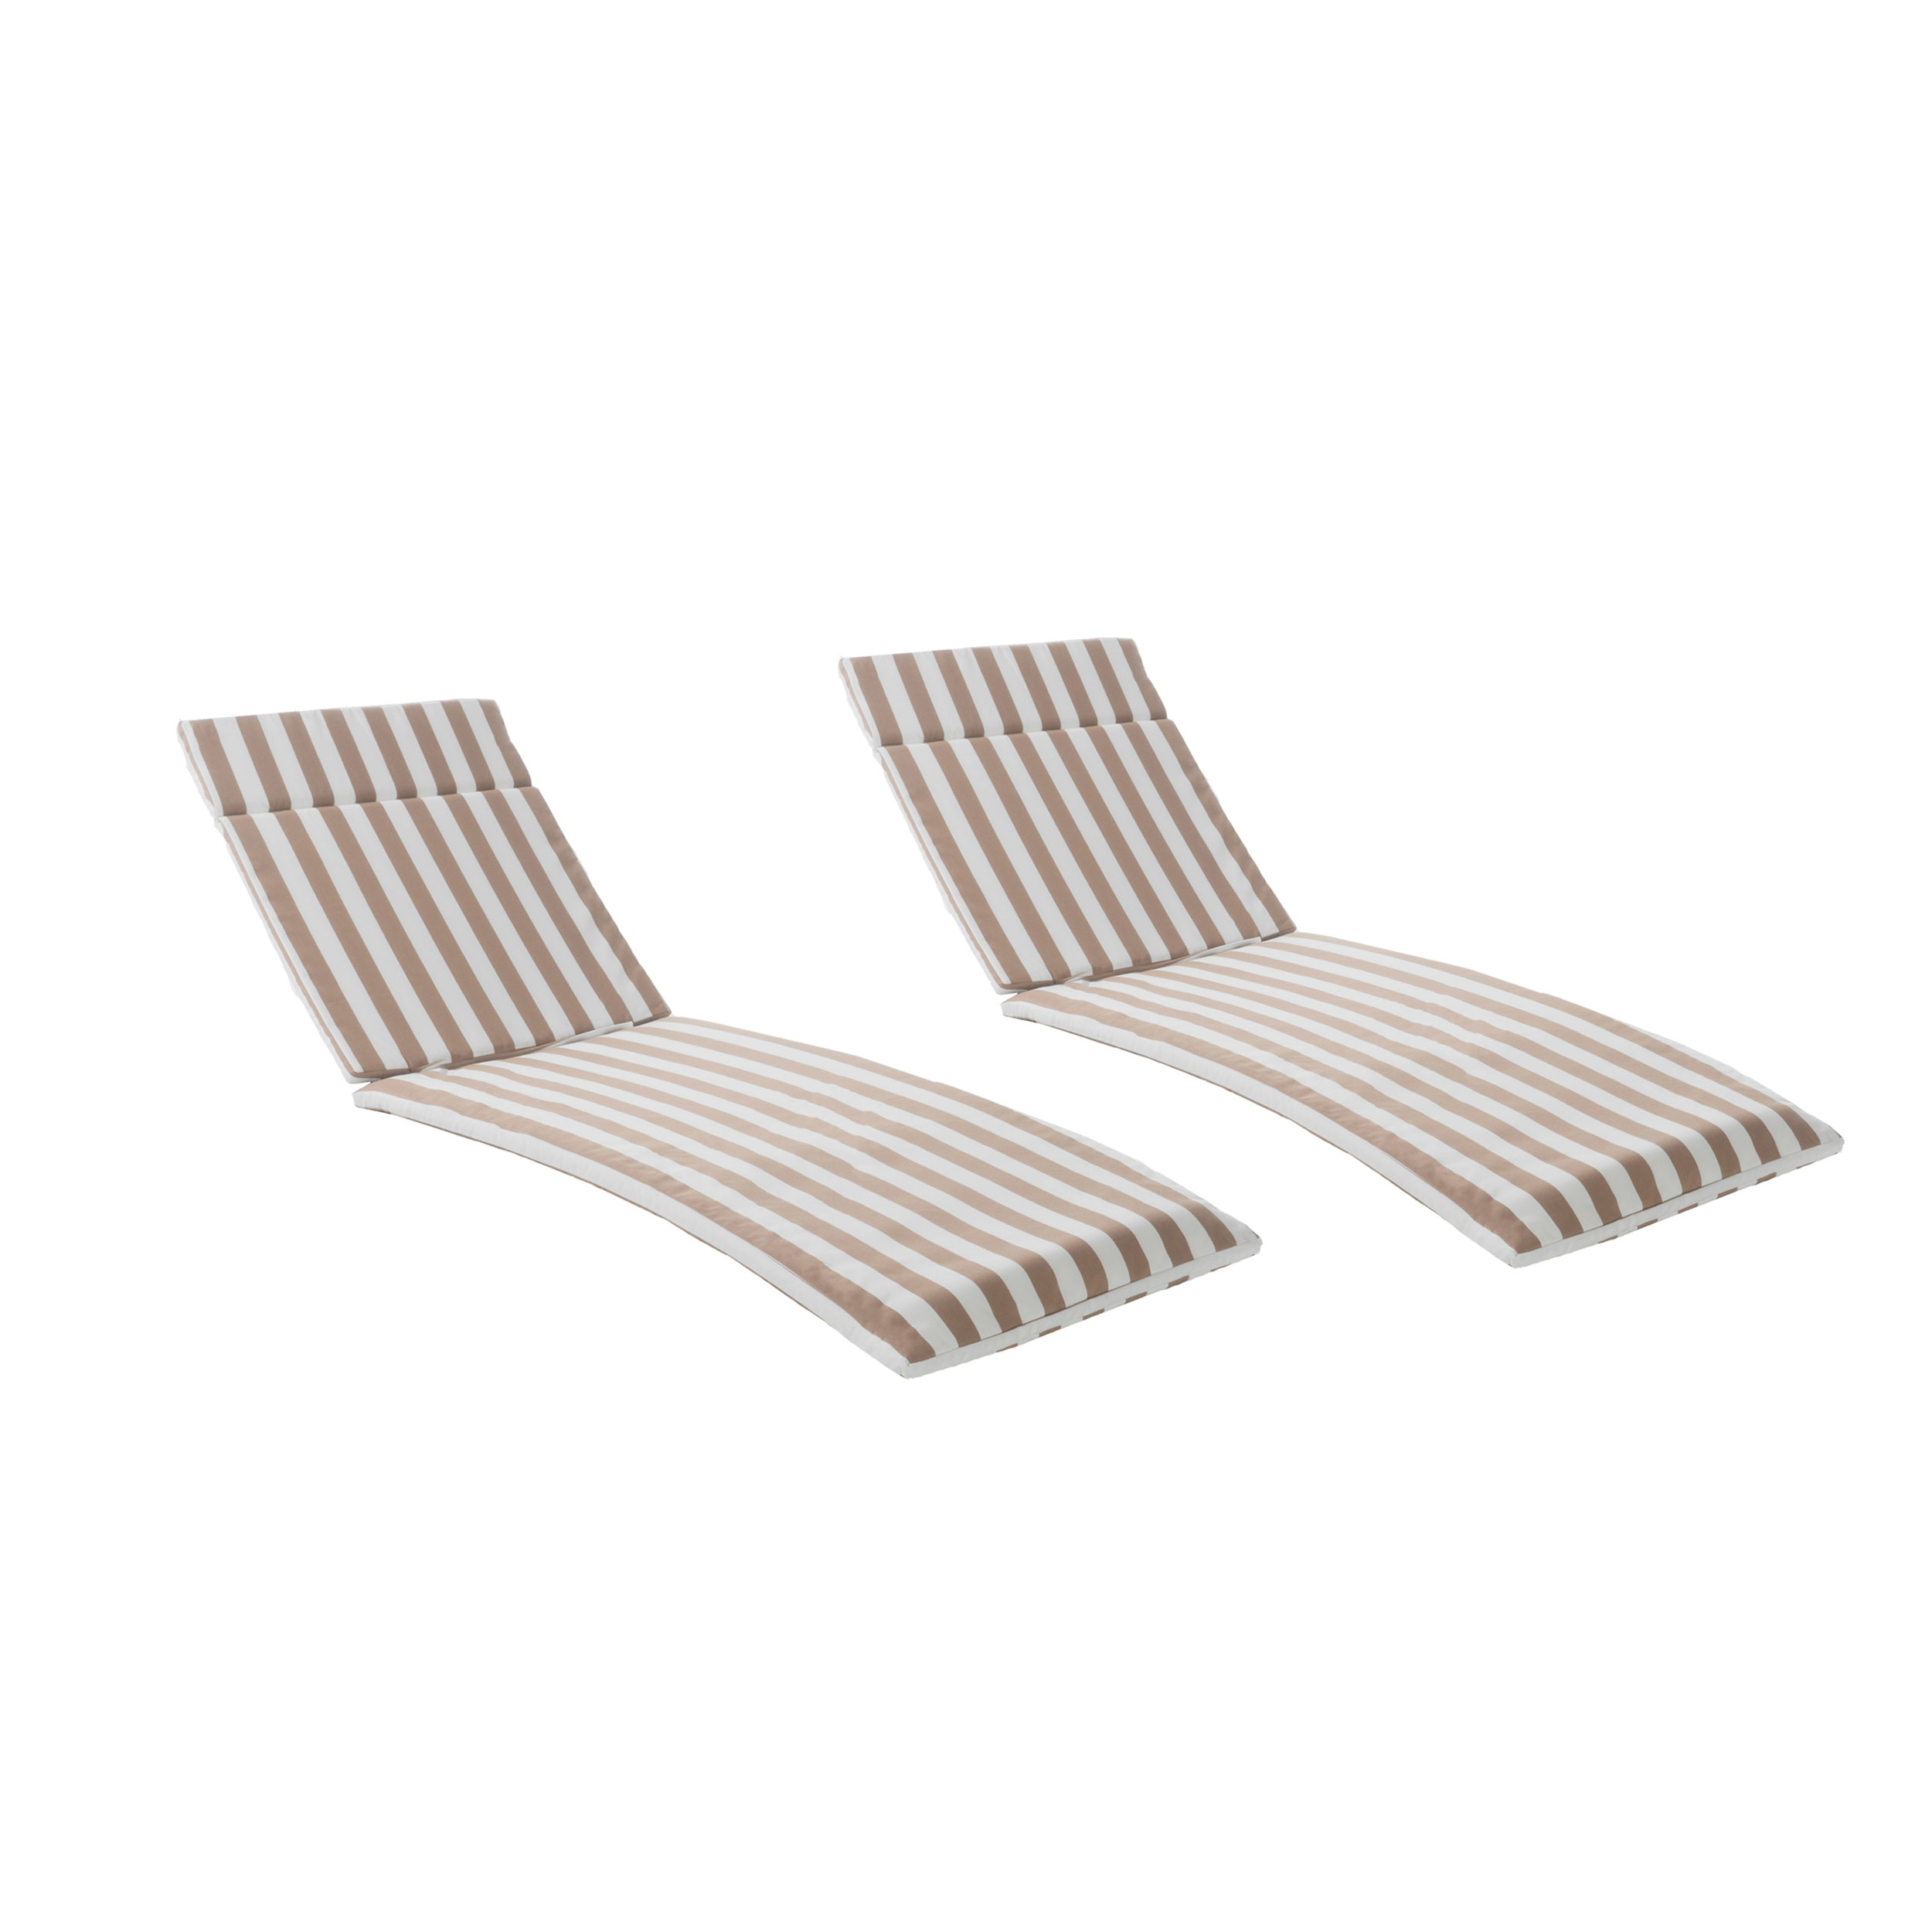 Lakeport Outdoor Water Resistant Chaise Lounge Cushions (Set of 2) (2)